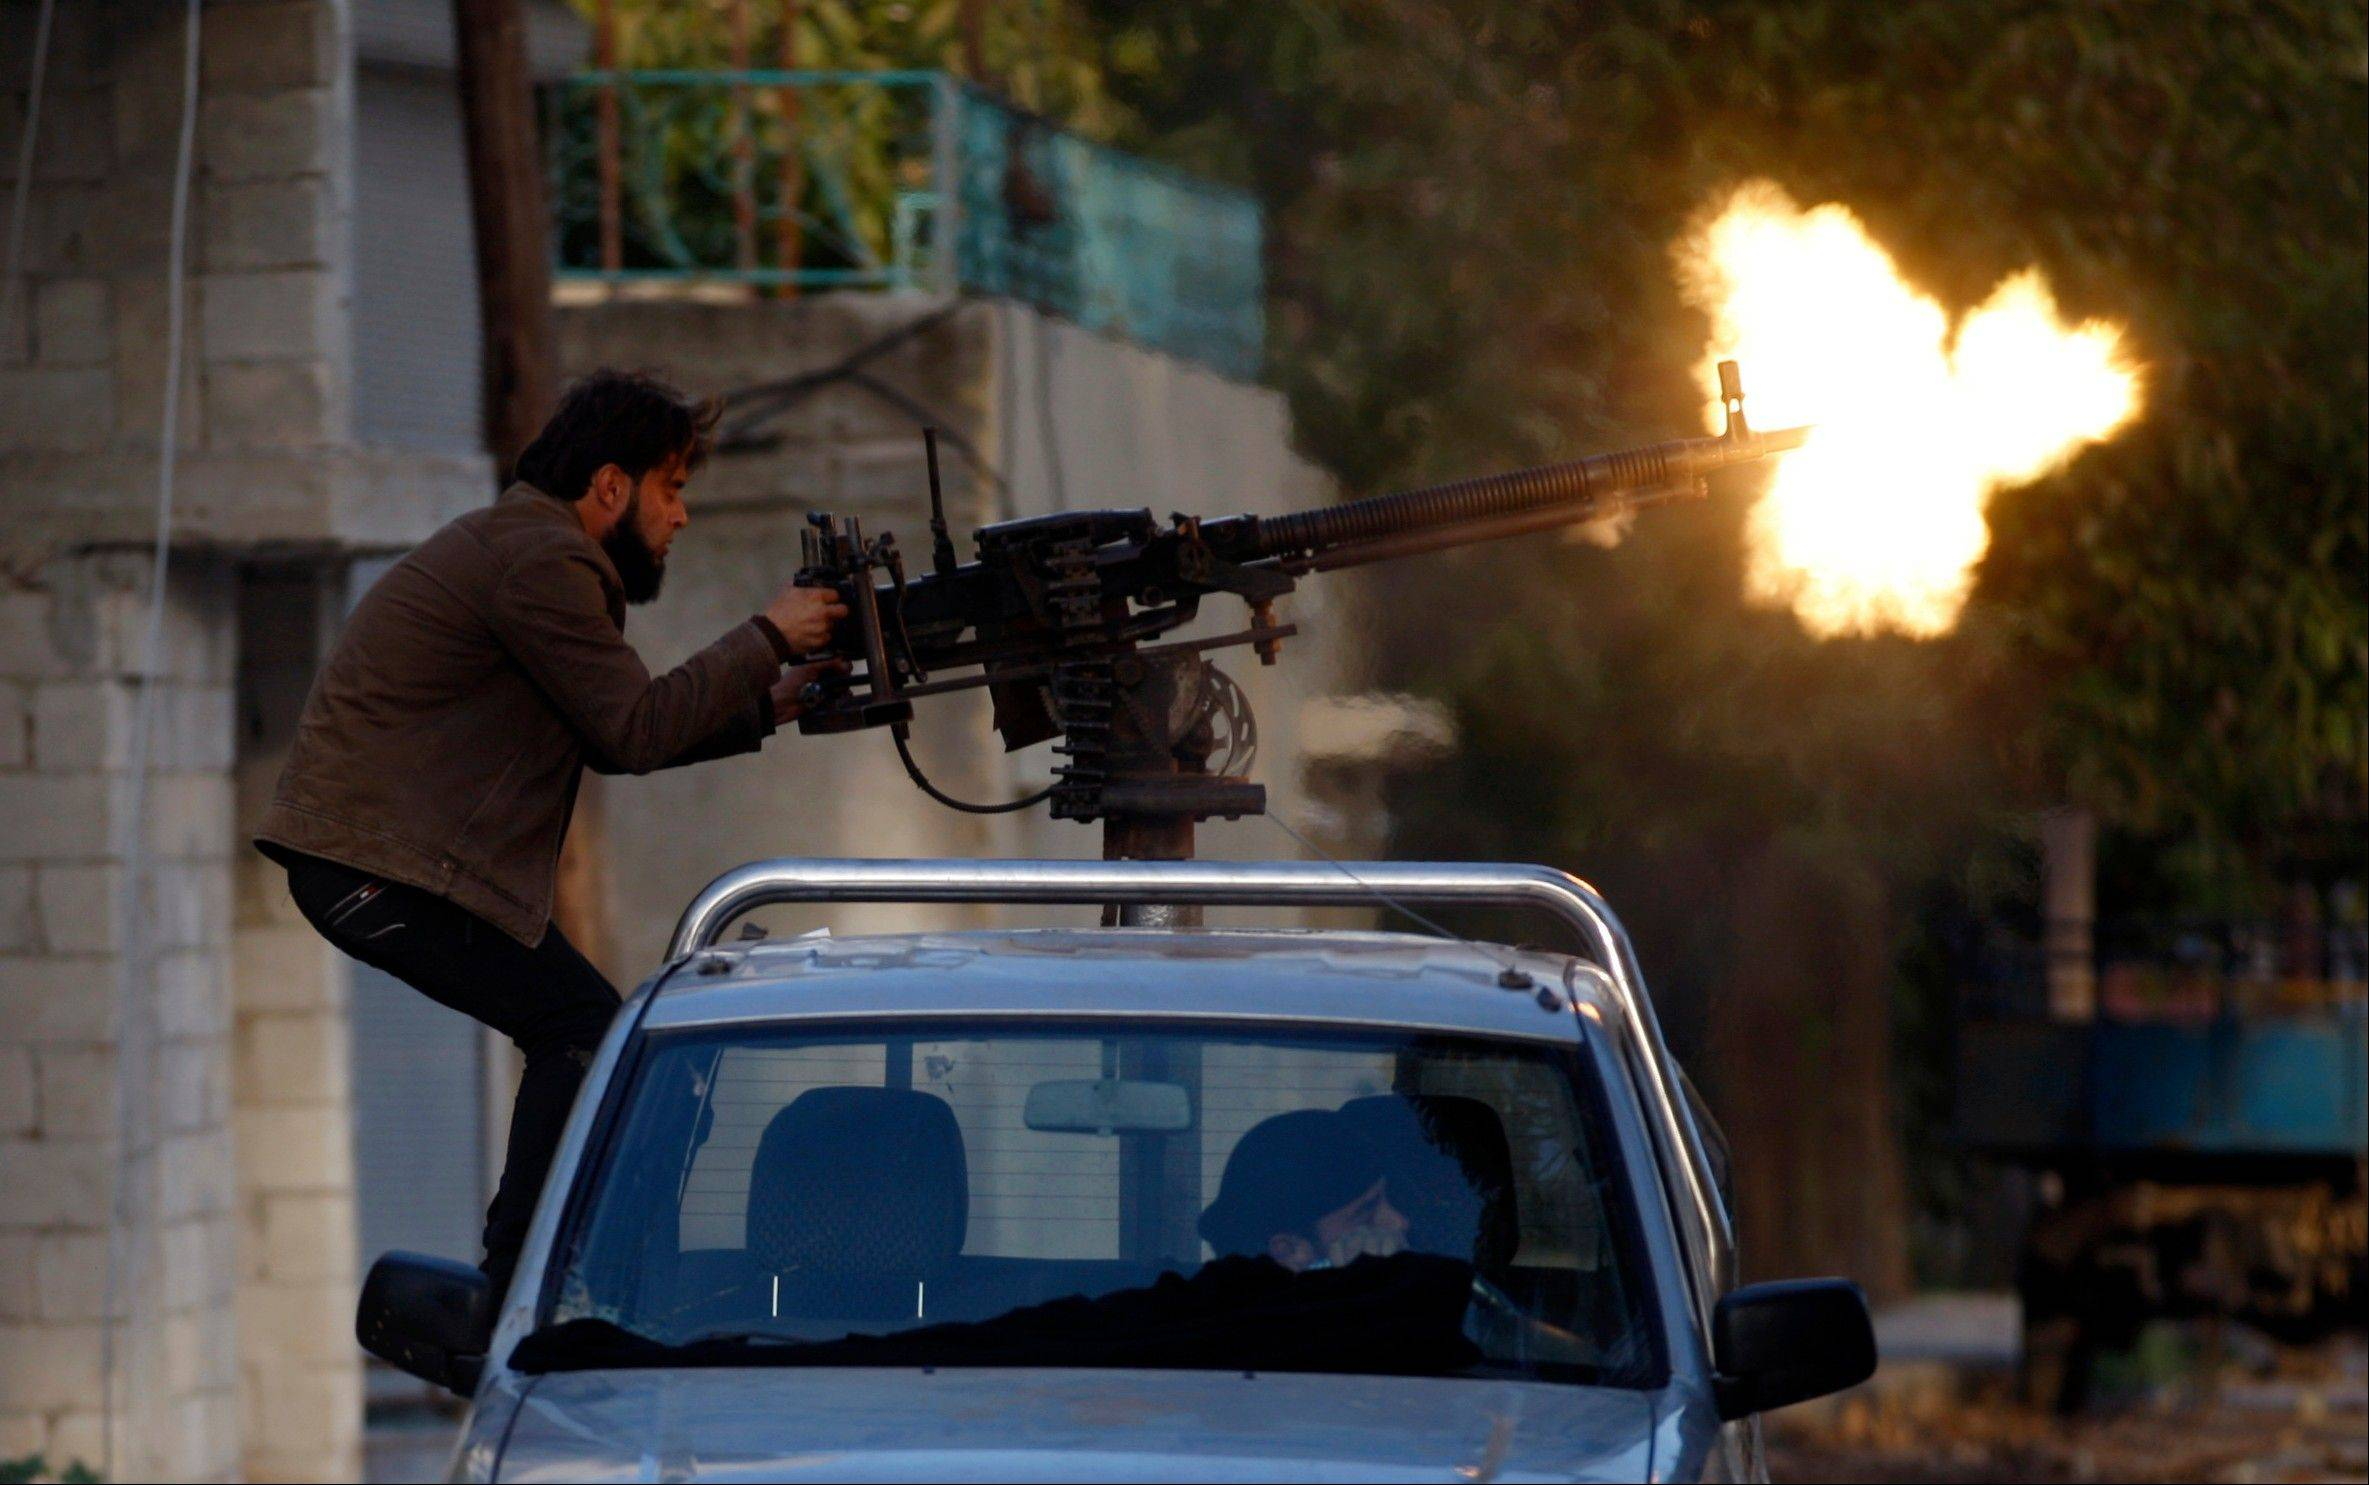 A Syrian fighter shoots during clashes with Syrian army forces in the town of Harem on the outskirts of Idlib, Syria.